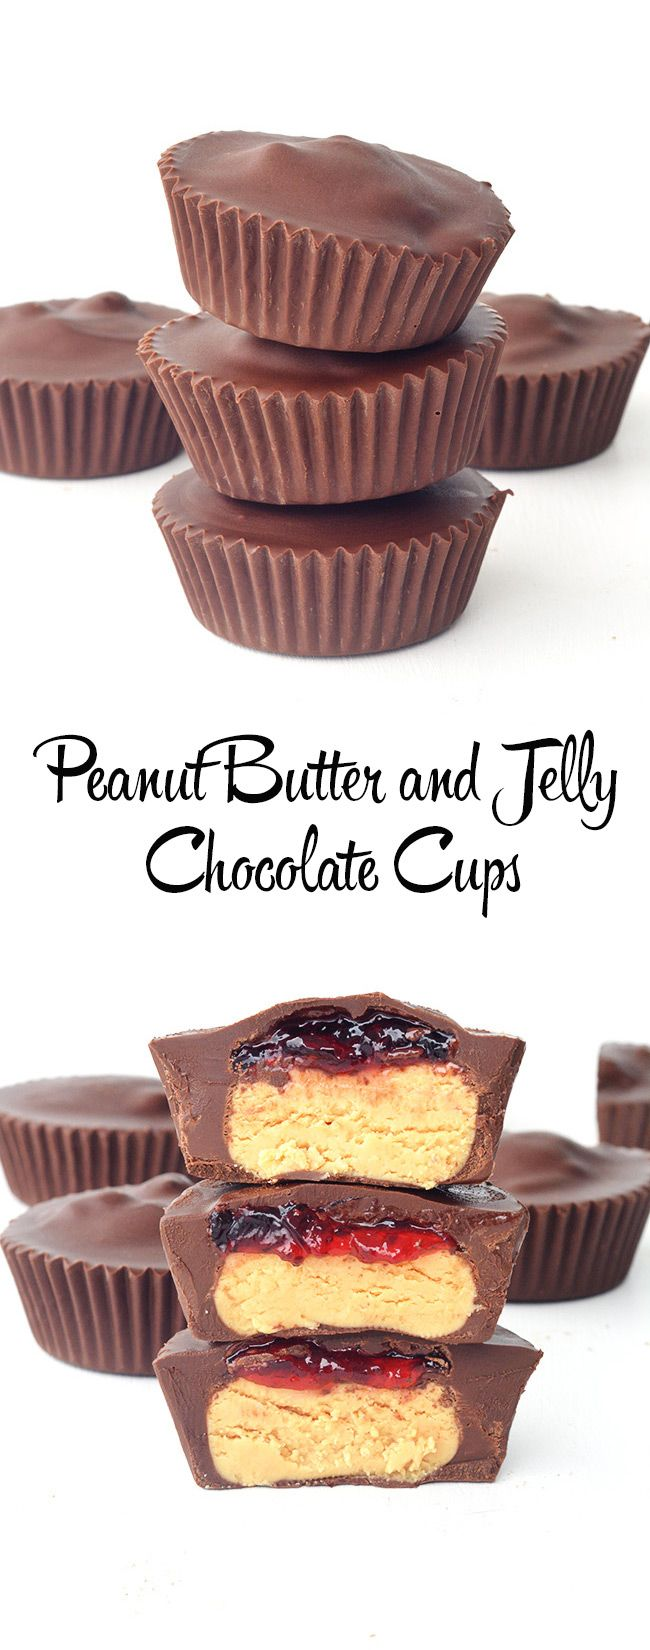 Peanut Butter And Jelly Chocolate Cups